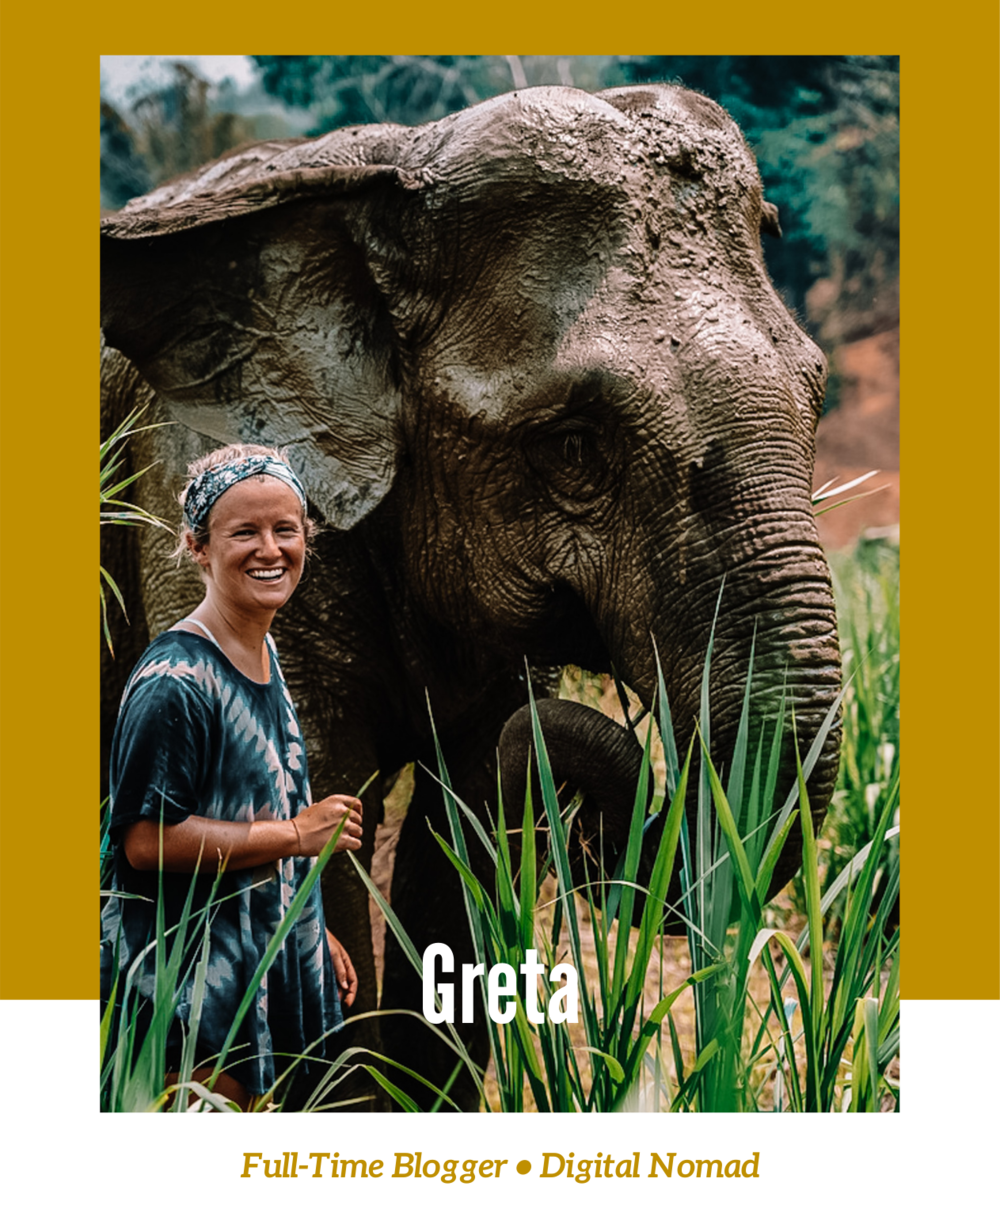 Greta is a Full-Time Blogger and Digital Nomad